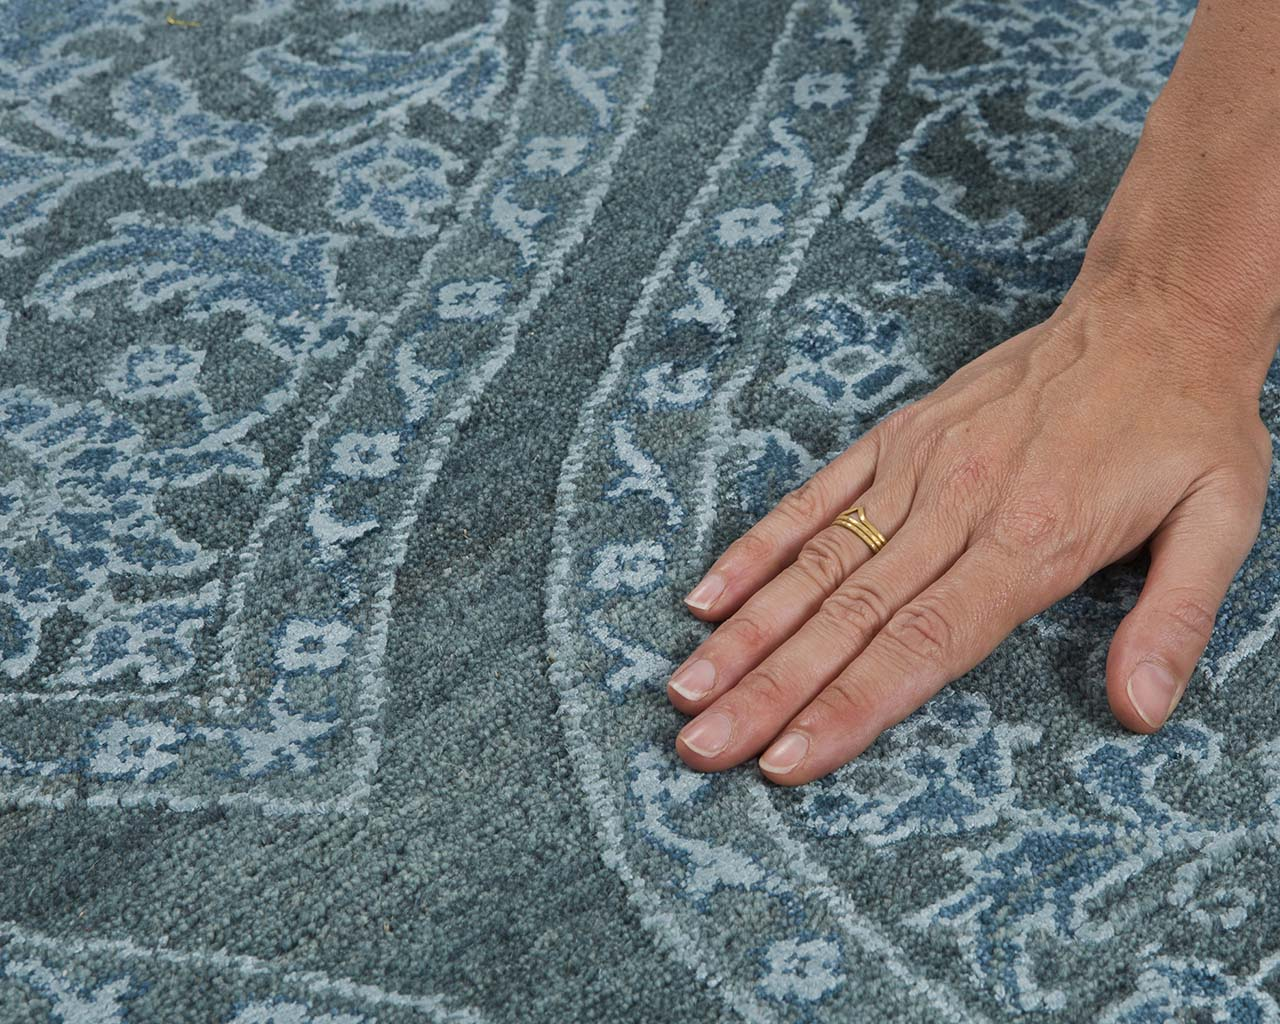 woven luxurious navy hand with ring inexpensive persian carpets